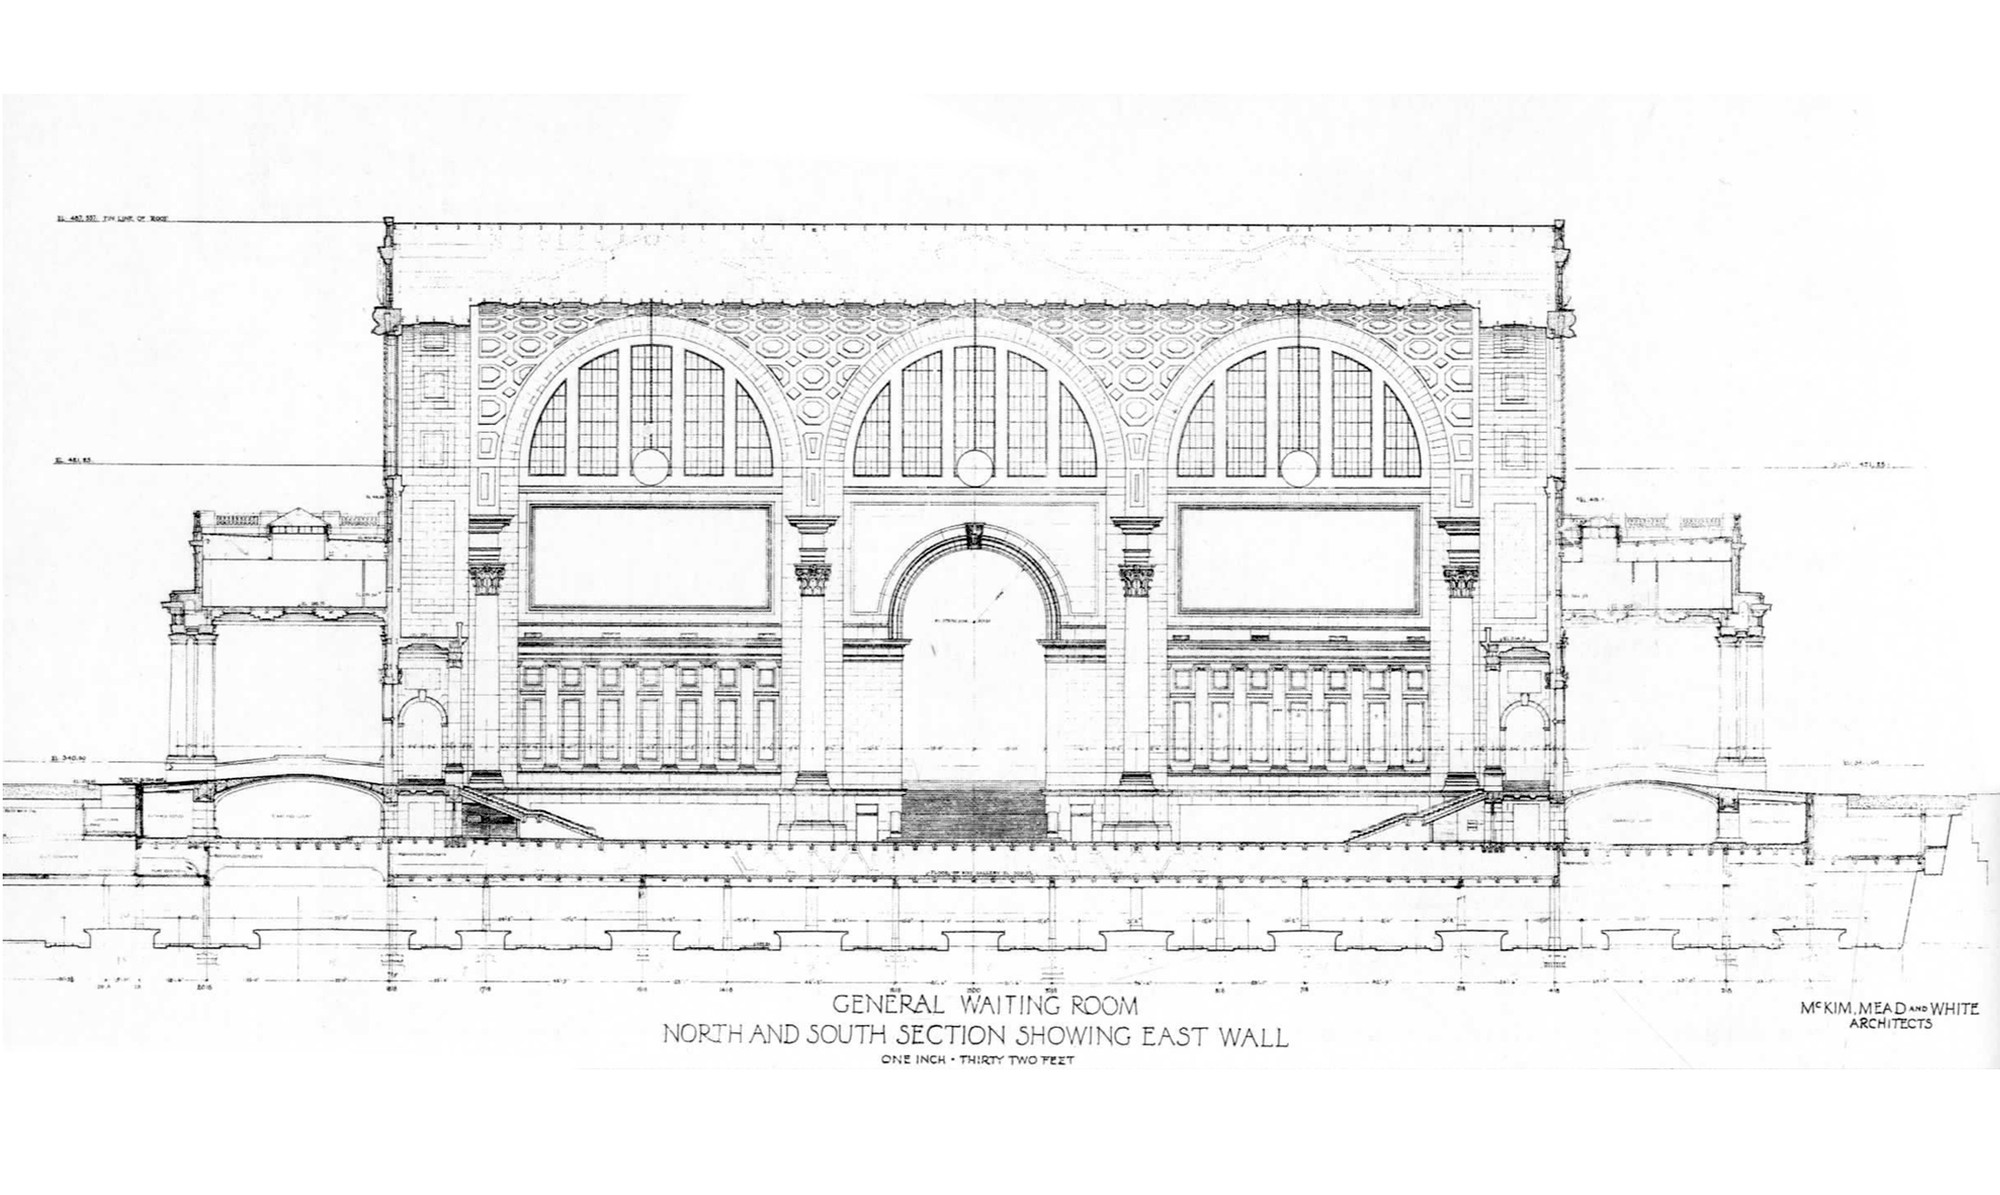 Plan Elevation Section Of Bus Stop : Ad classics pennsylvania station mckim mead white